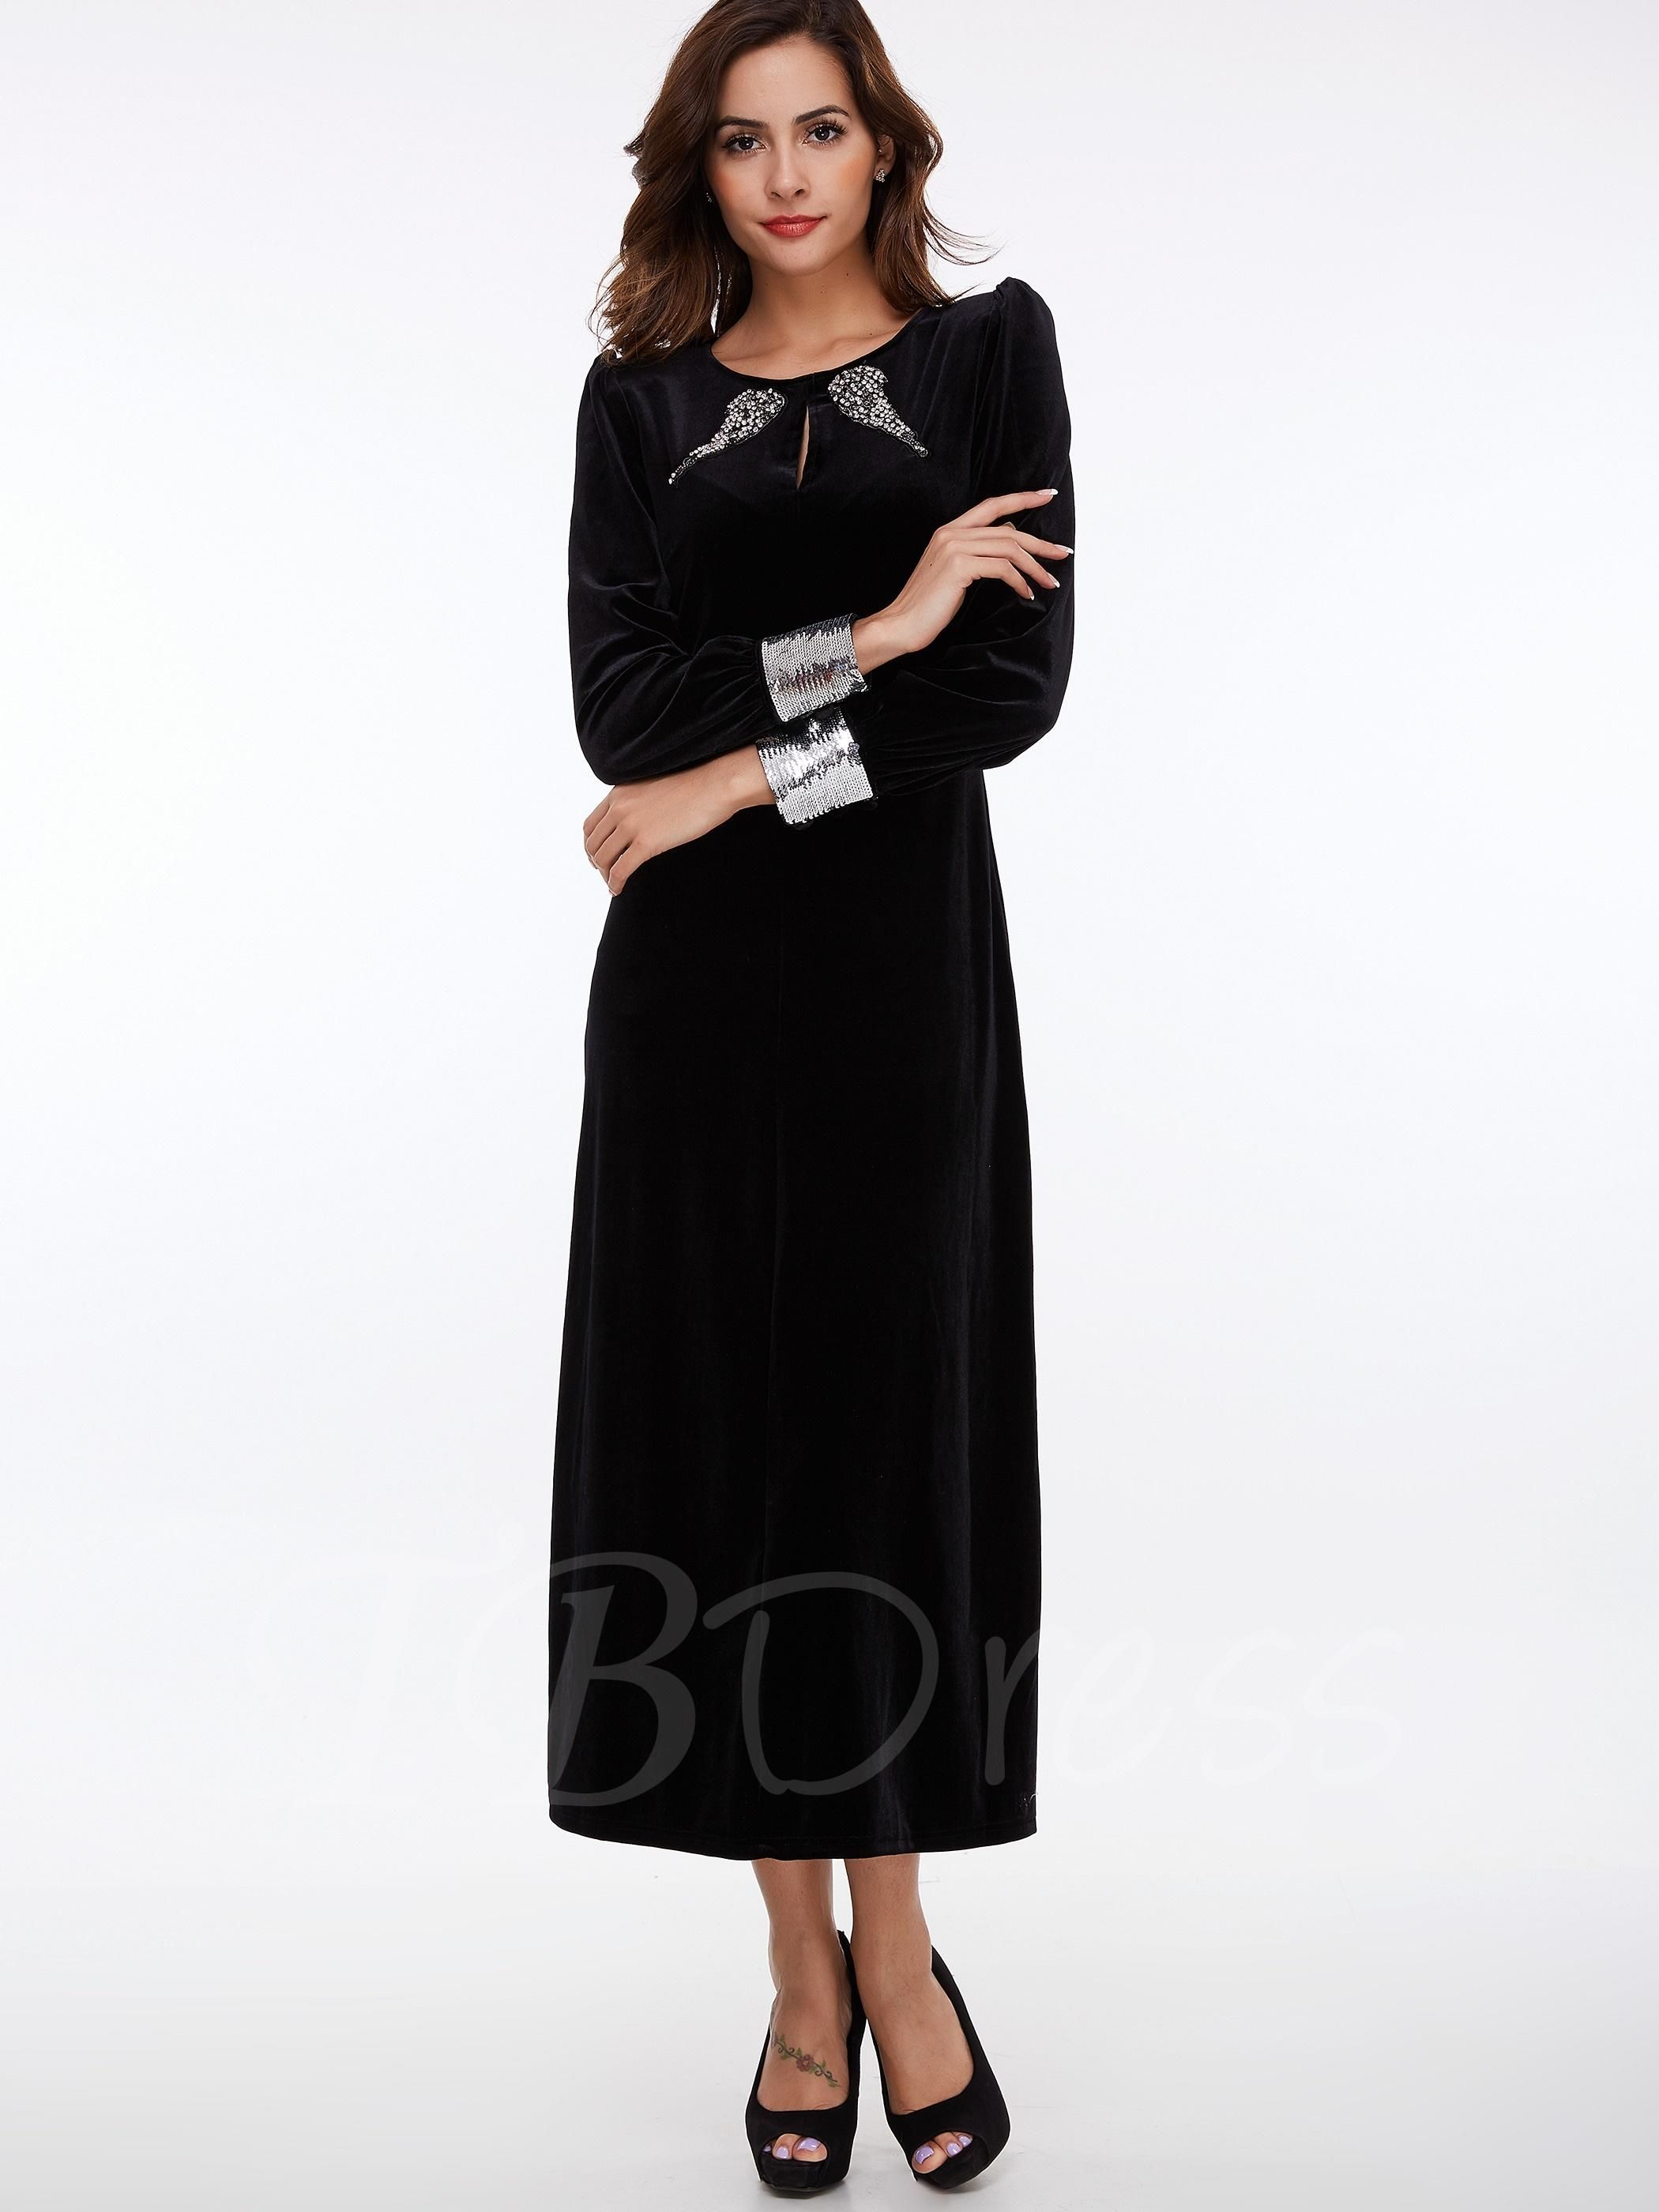 Adorewe tbdress long sleeve sequins womens maxi dress adorewe